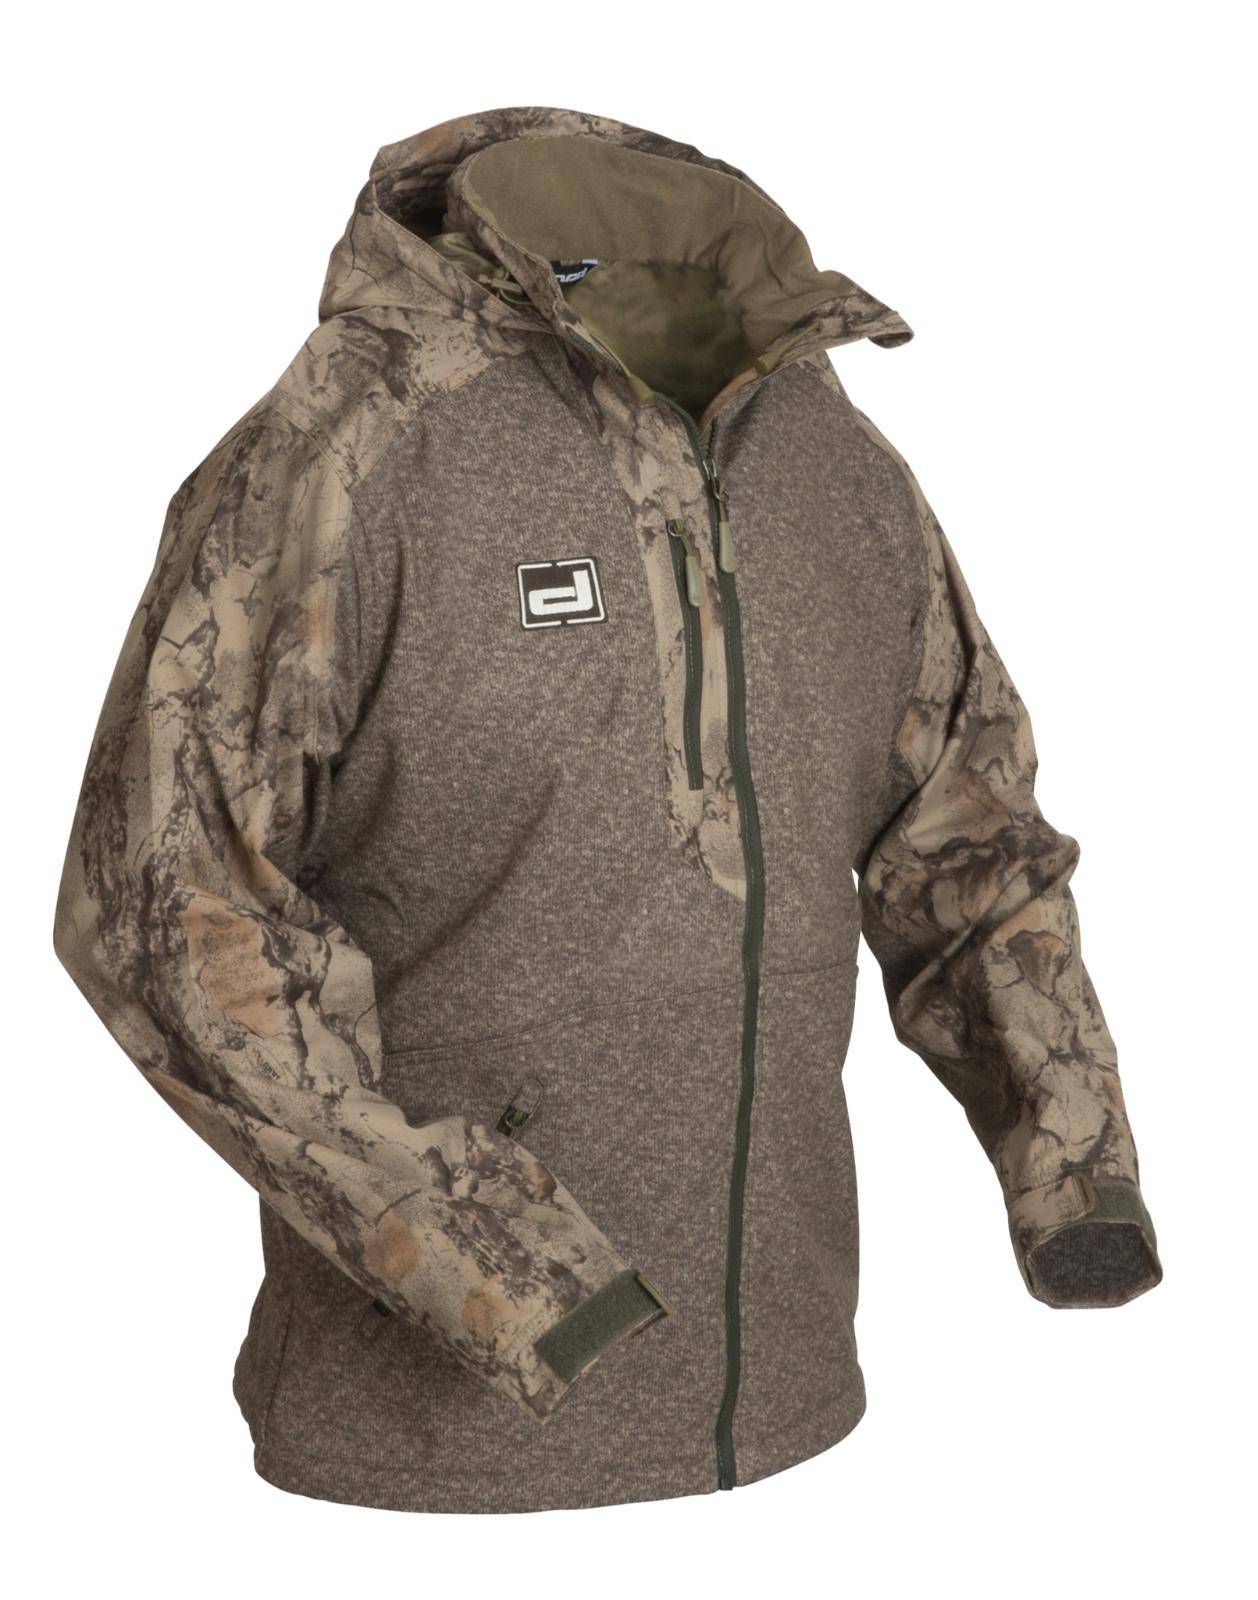 Banded Tule Lake Zip Jacket Camo